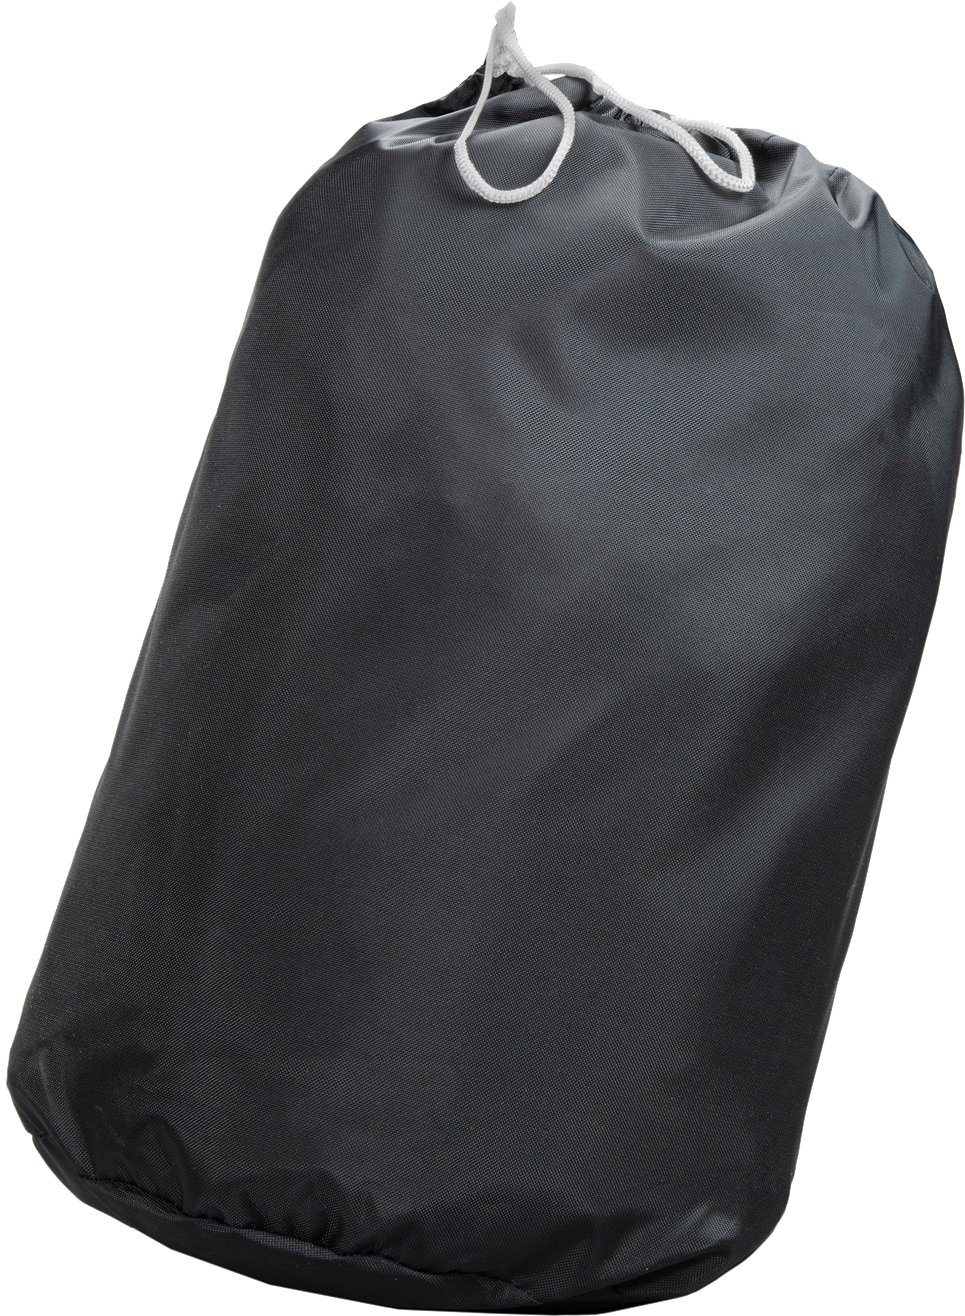 Raider 02-7718 SX-Series Weather and UV-Resistant Snowmobile Storage Cover Large